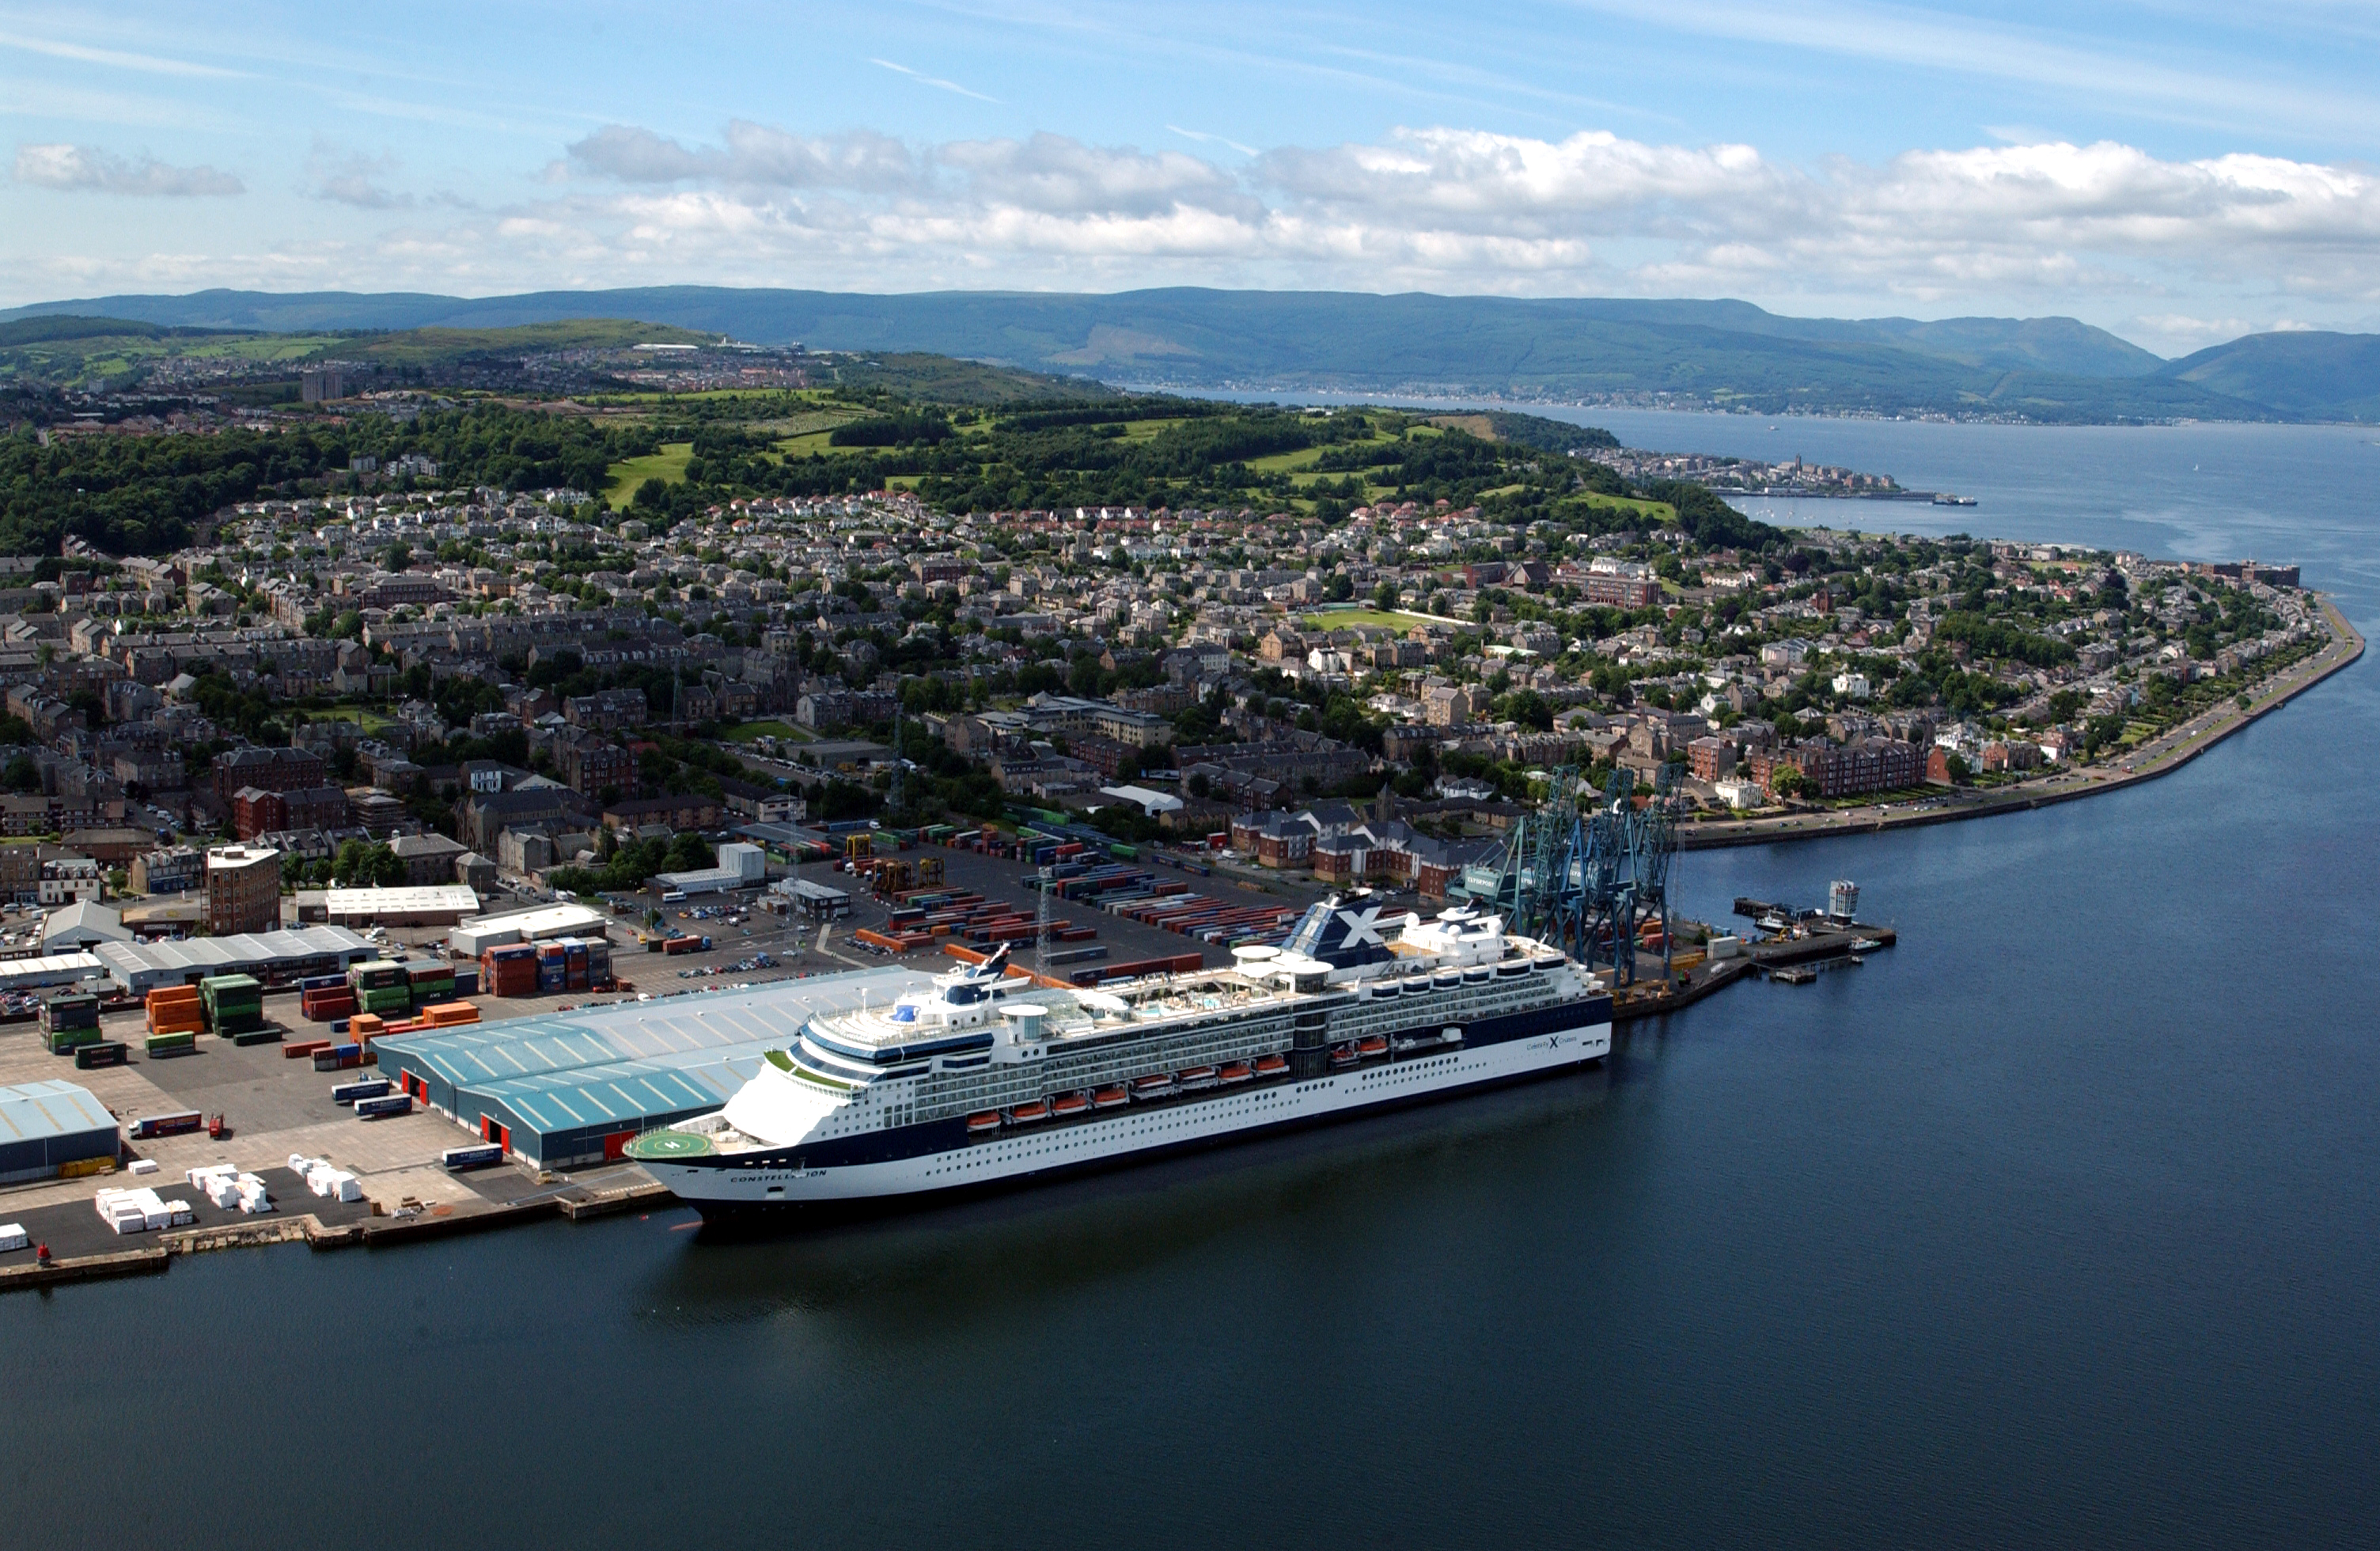 Riverside Inverclyde How Regeneration Is Reviving Inverclyde - Cruise ships at greenock